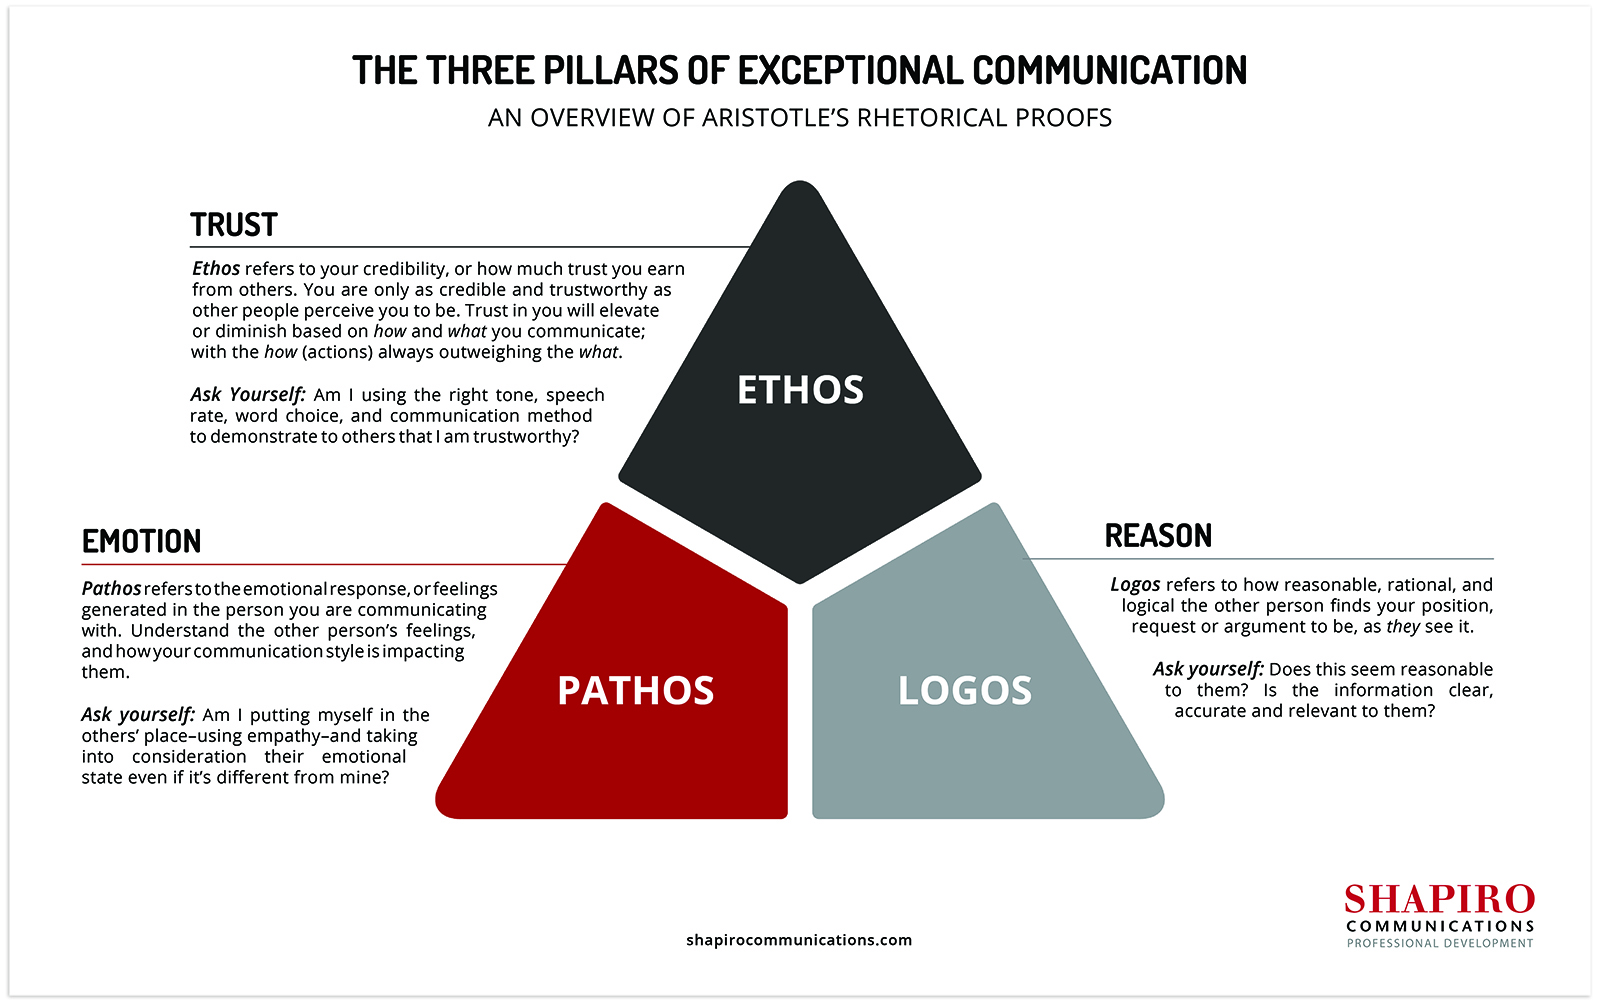 A test-heavy visual of three pillars of exceptional communication showing ethos, pathos, and logos and describing how each component